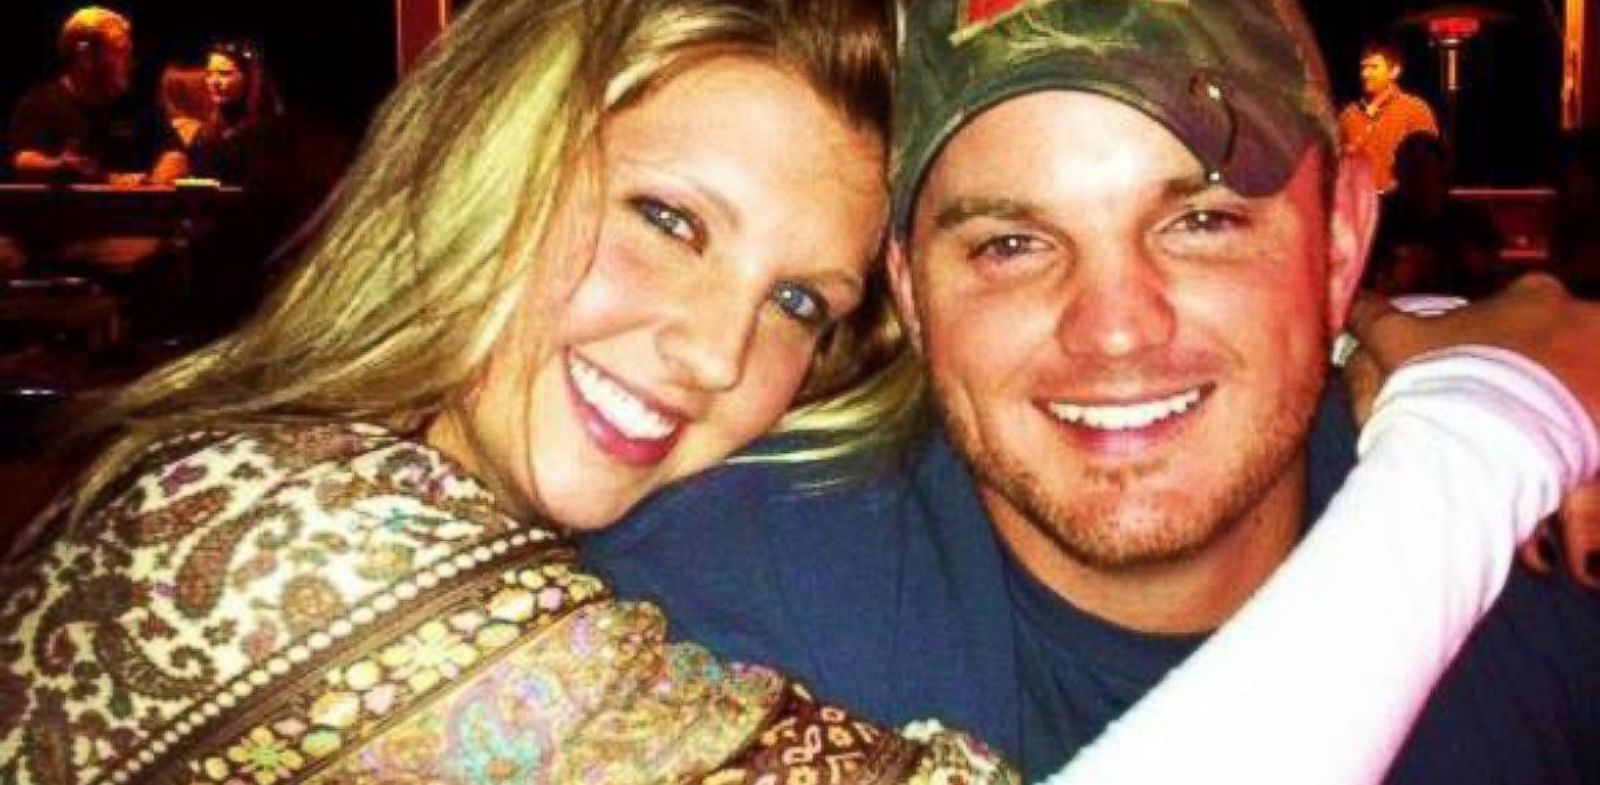 PHOTO: Kari Dobson and Ryan Quinton are shown in this Nov. 3, 2012 photo from Kari Dobsons Facebook page.